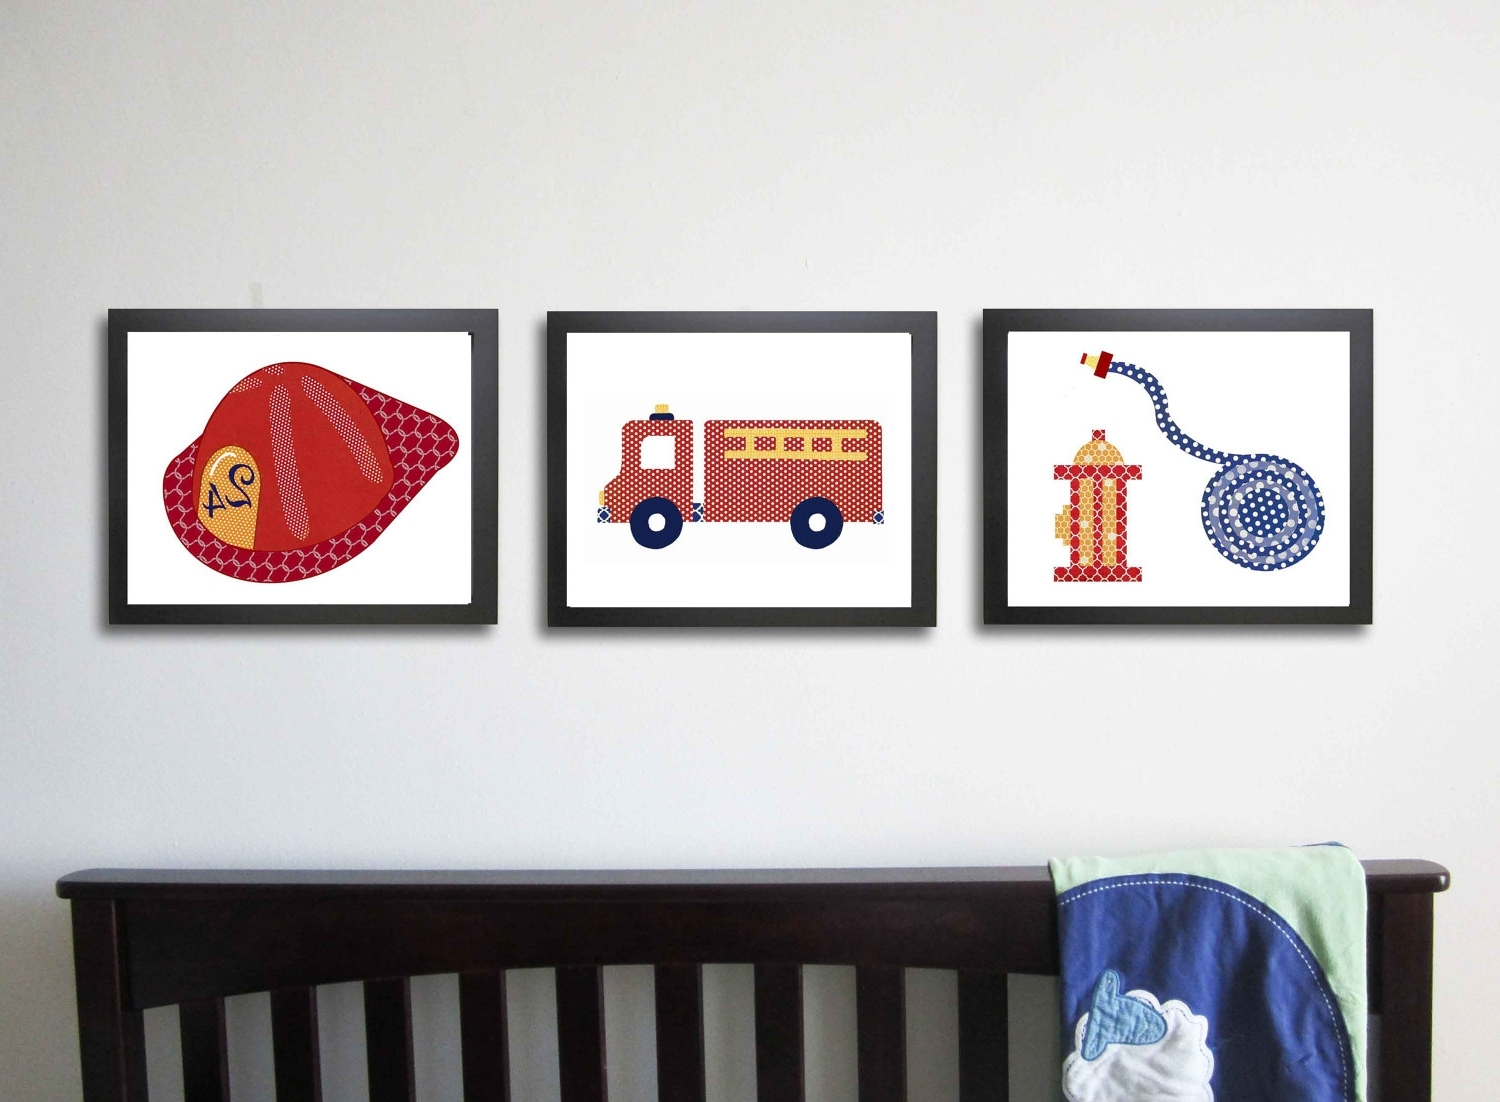 Best And Newest Boys Bedroom: Astounding Picture Of Red Kid Fire Truck Bedroom With Fire Truck Wall Art (View 3 of 15)